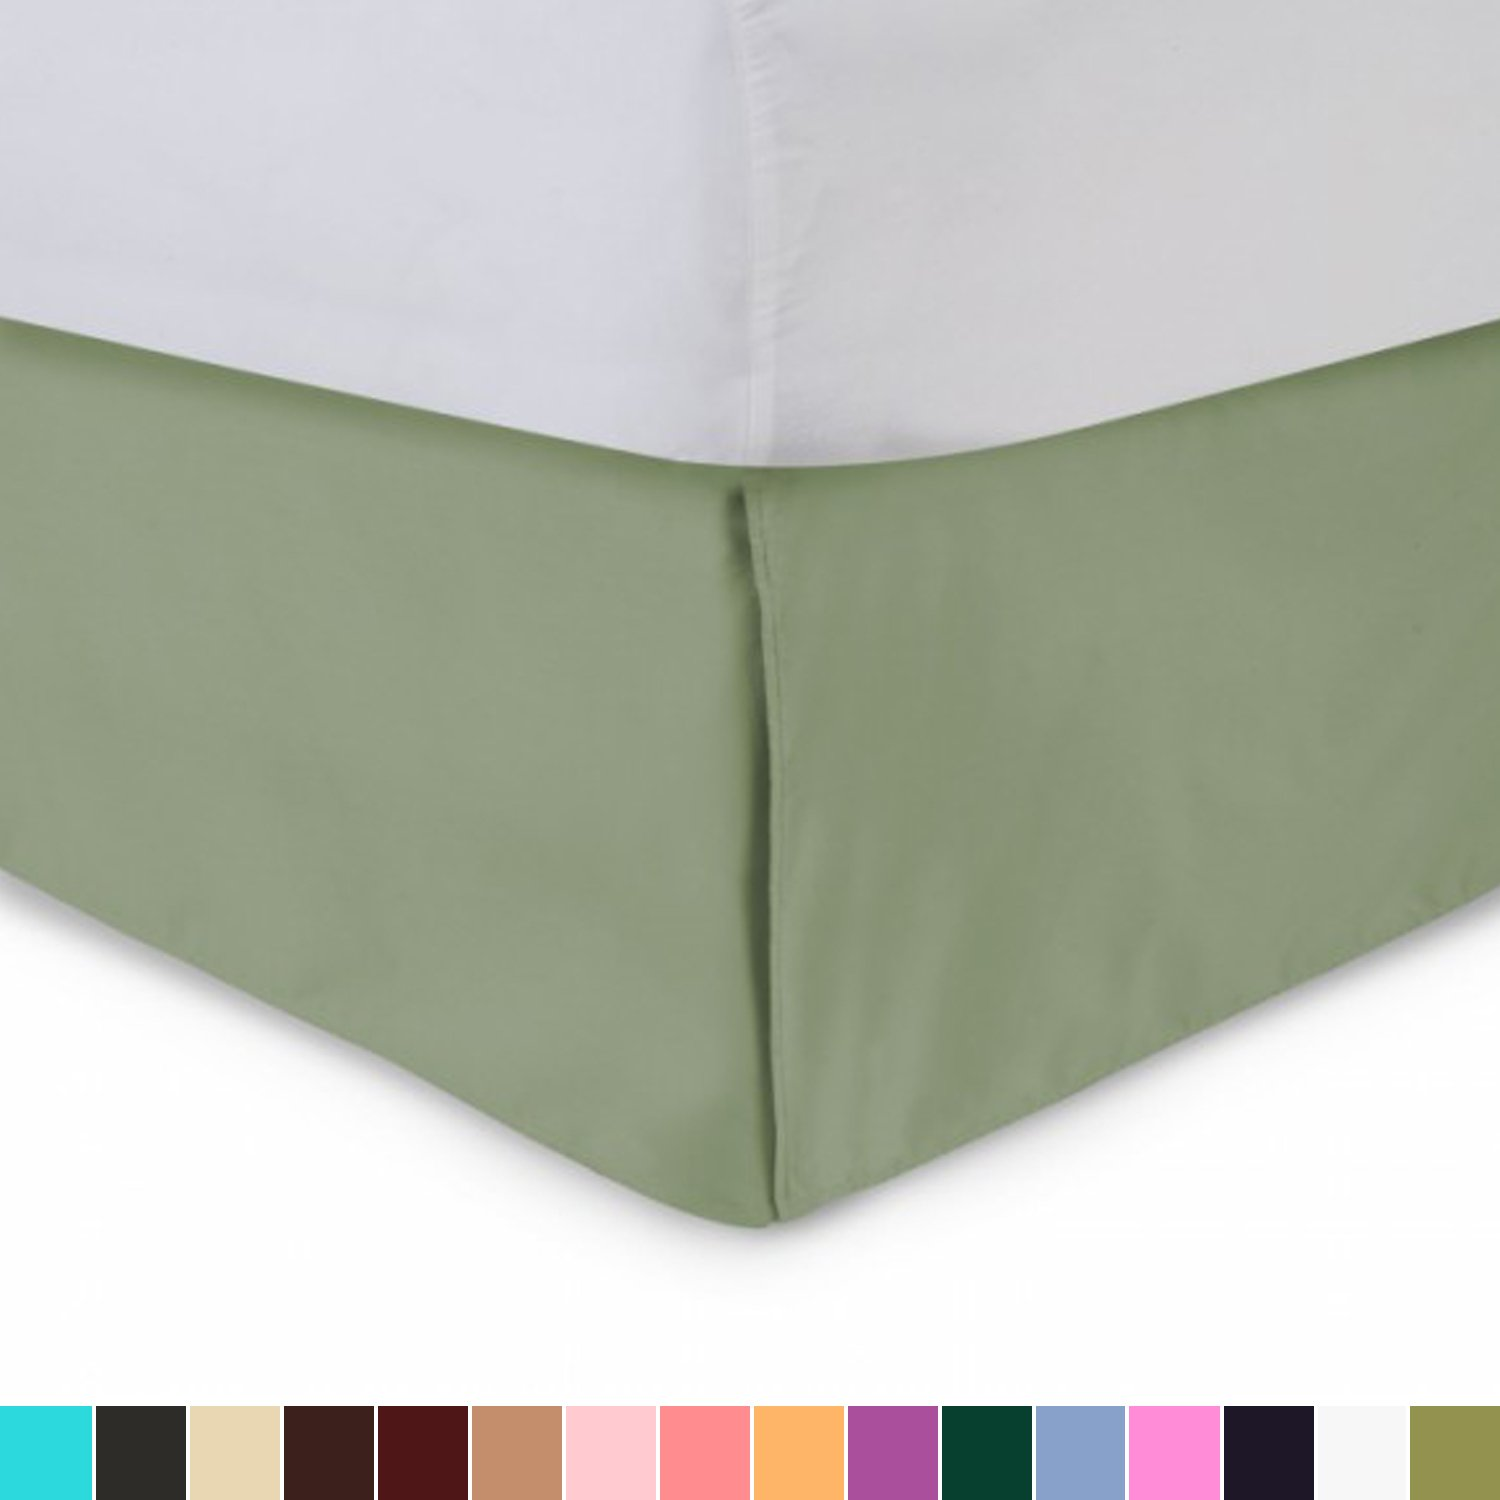 Green Bed Skirt Queen.Shop Bedding Harmony Lane Tailored Bed Skirt 21 Inch Drop Sage Green Queen Bedskirt With Split Corners Available In And 16 Colors